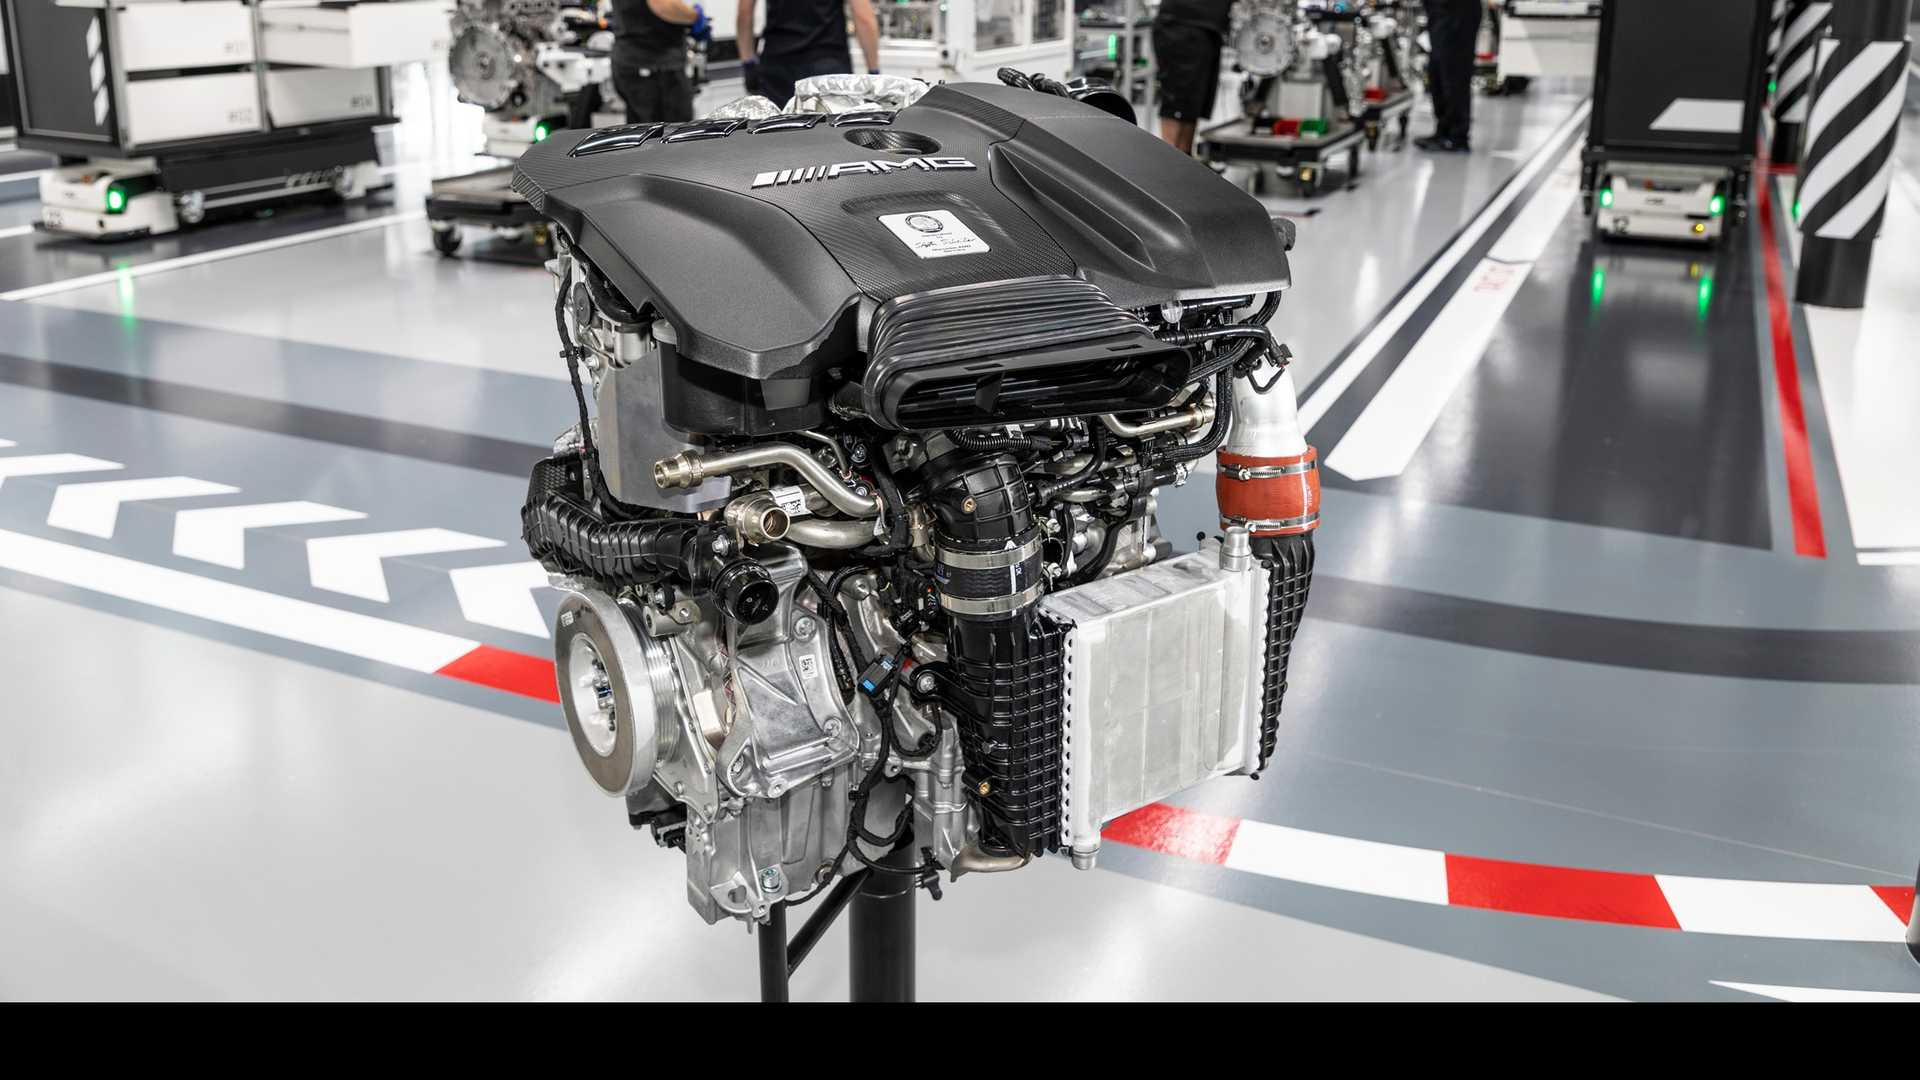 mercedes-amg-m139-engine-21